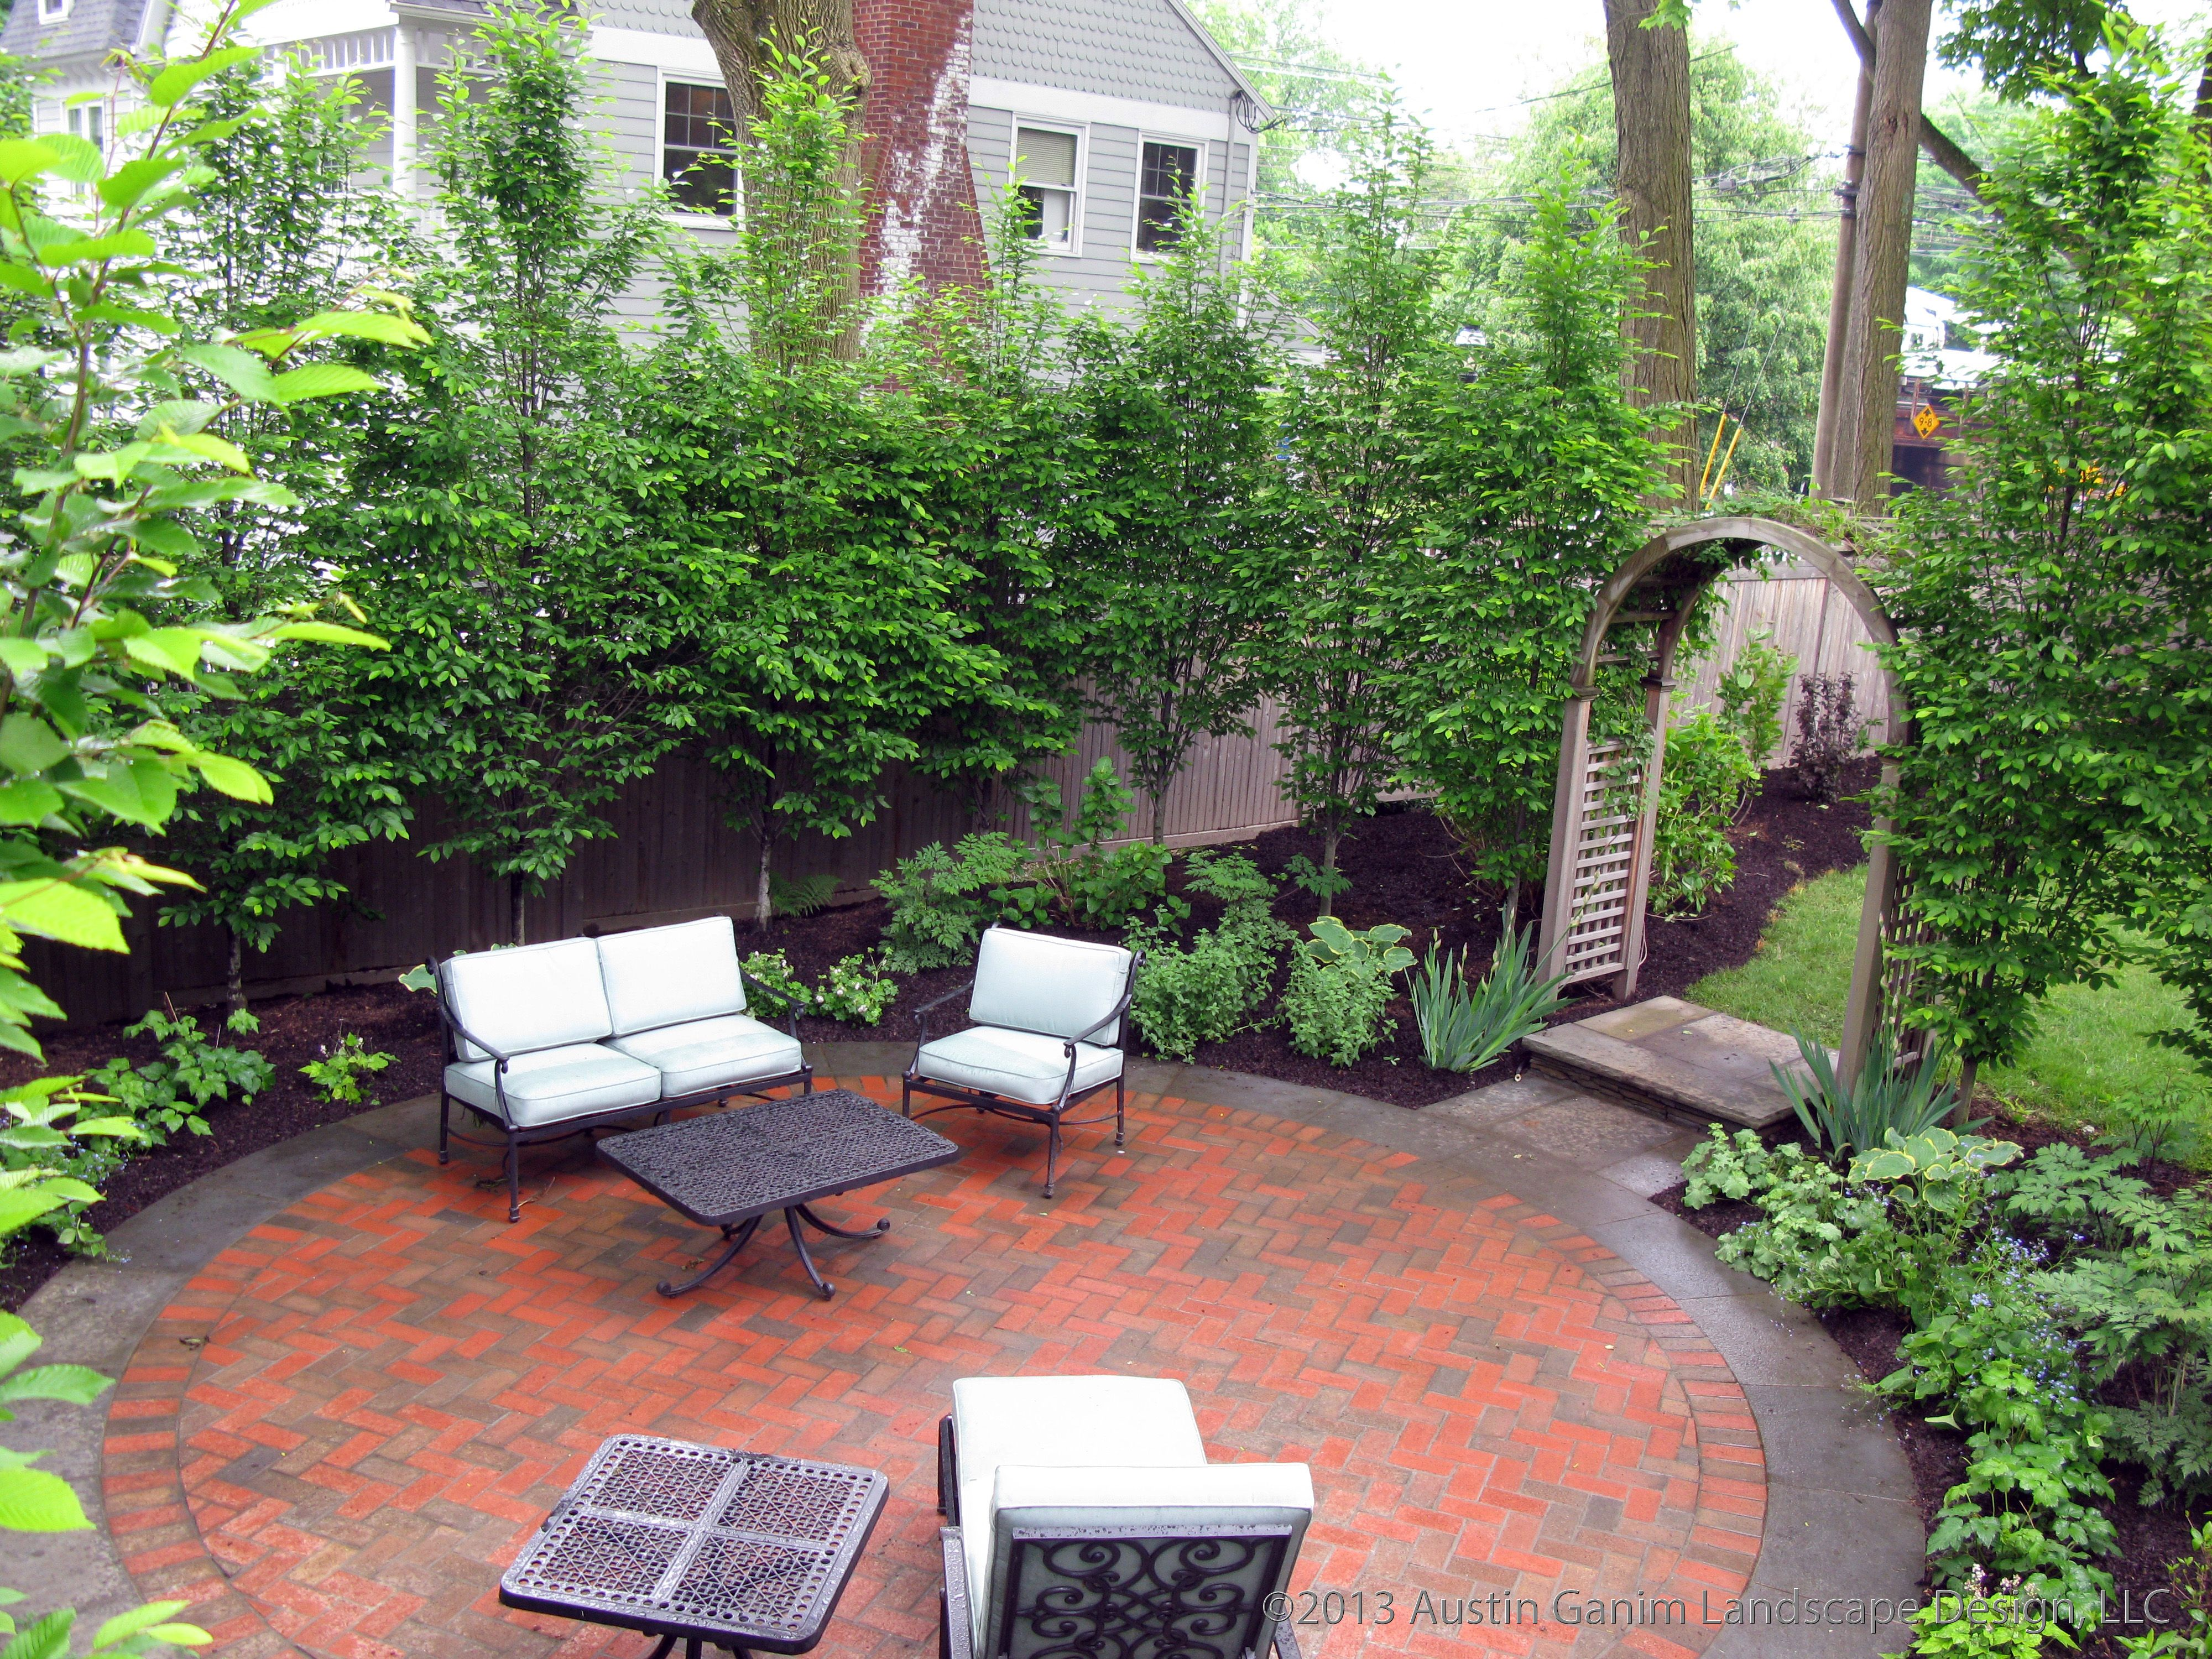 Circular Bluestone And Brick Patio Surrounded By European Hornbeam Hedge And Perennial Shade Gardens S Patio Traditional Landscape Tropical Landscape Design